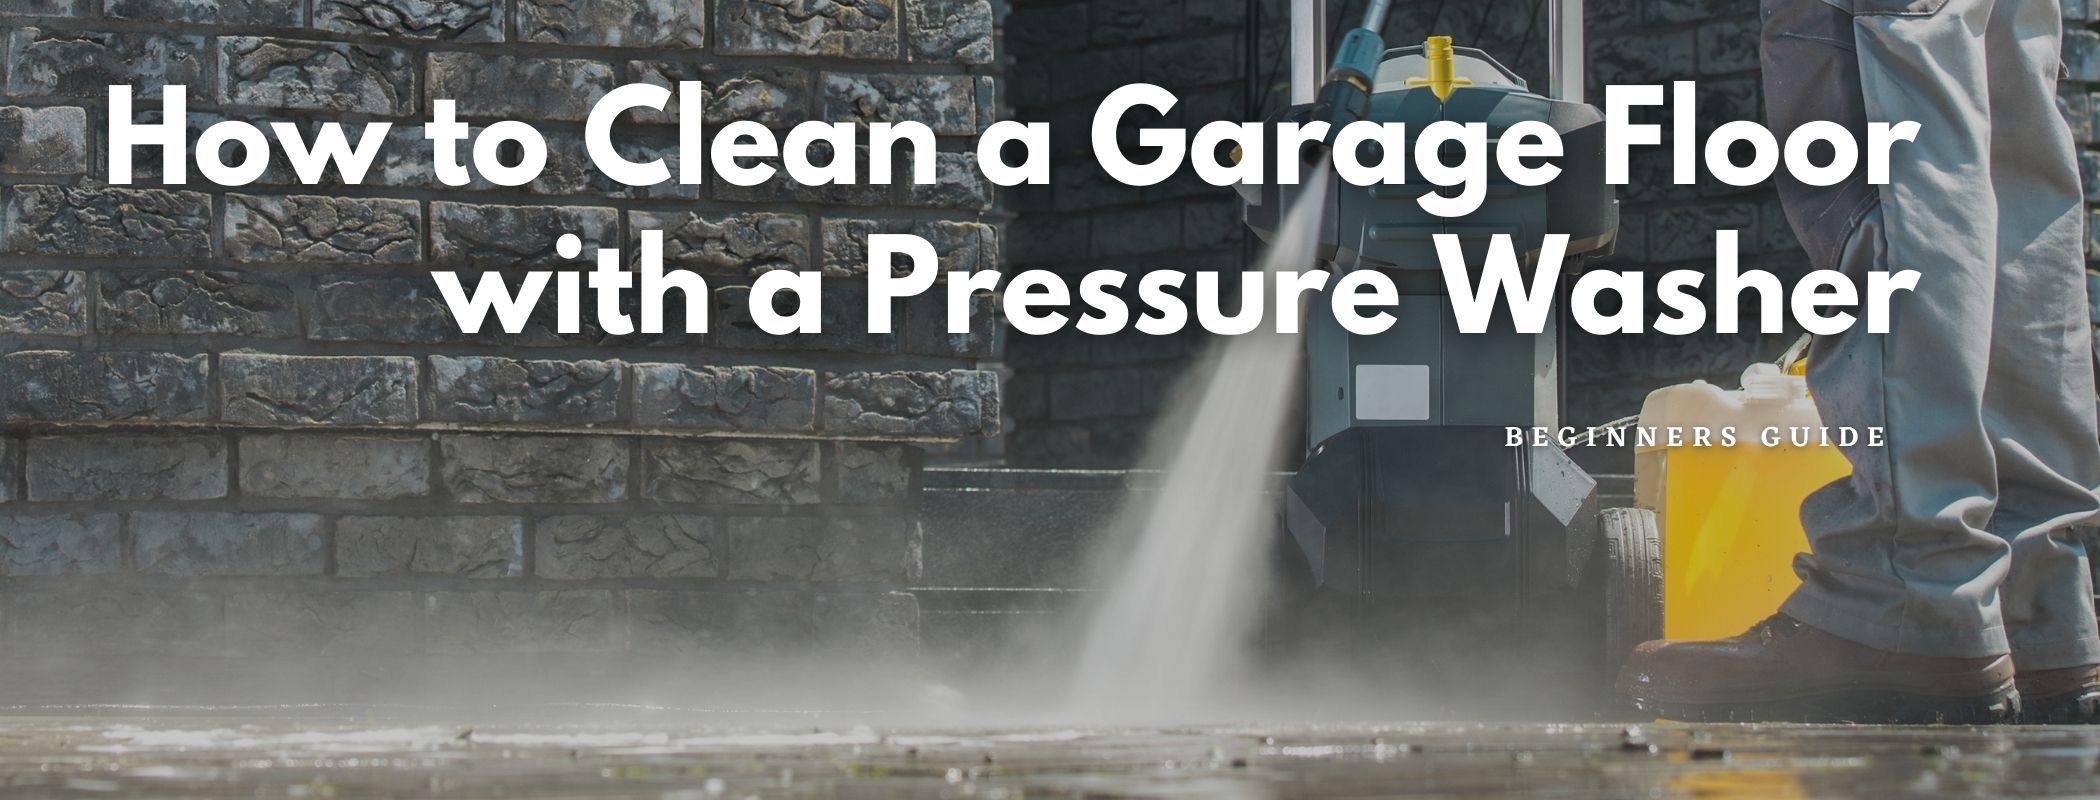 How to Clean a Garage Floor with a Pressure Washer